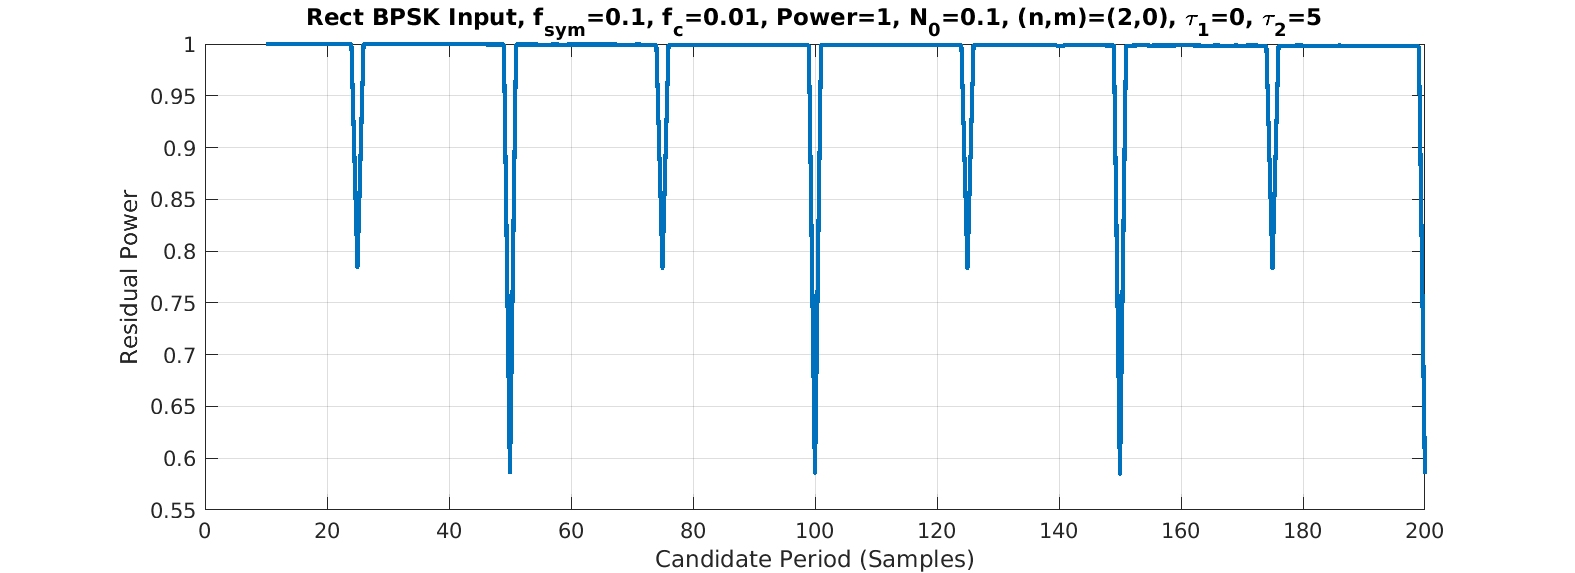 Synchronized averaging for rectangular-pulse BPSK, second order, delay of 5 samples in lag product